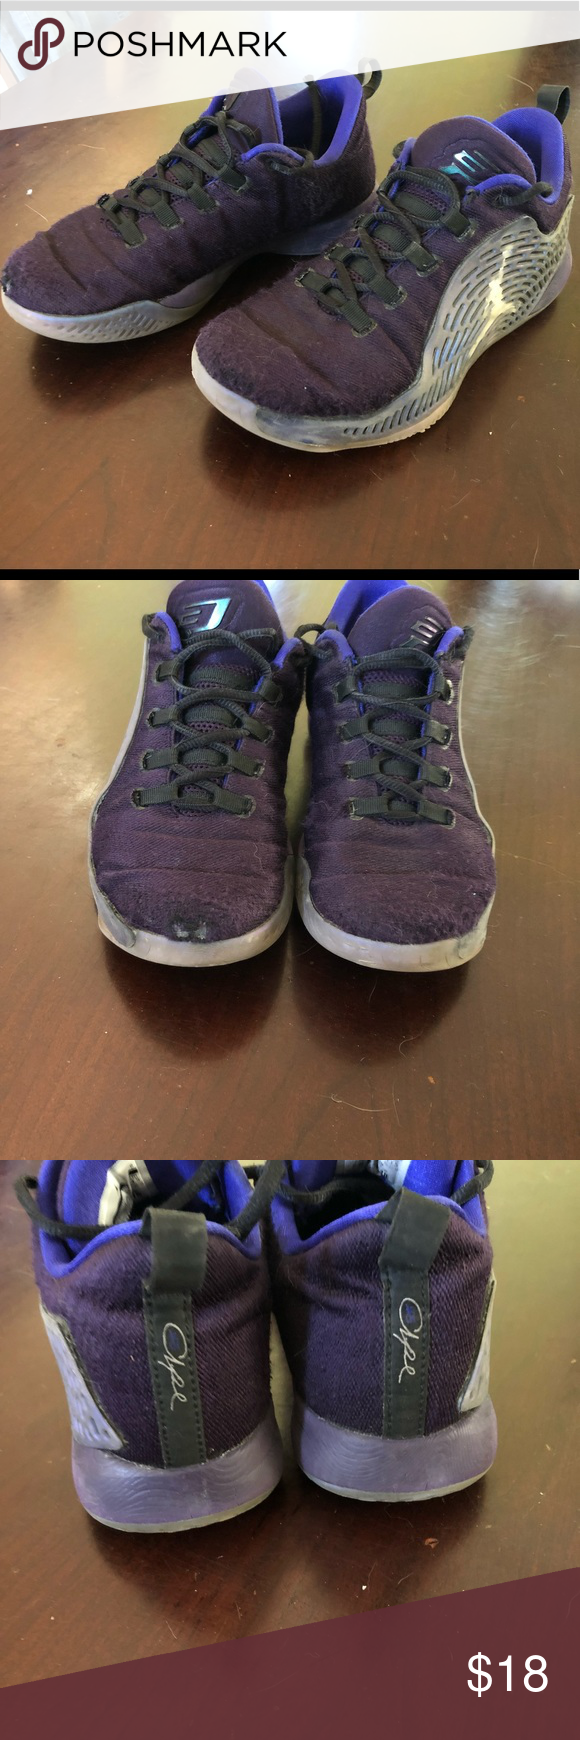 e14a7f51ef0 Jordan CP3 Basketball shoes - size 4.5 Boy s Purple Jordan Chris Paul 3  Basketball shoes. These do have signs of wear - see pics. Jordan Shoes  Sneakers